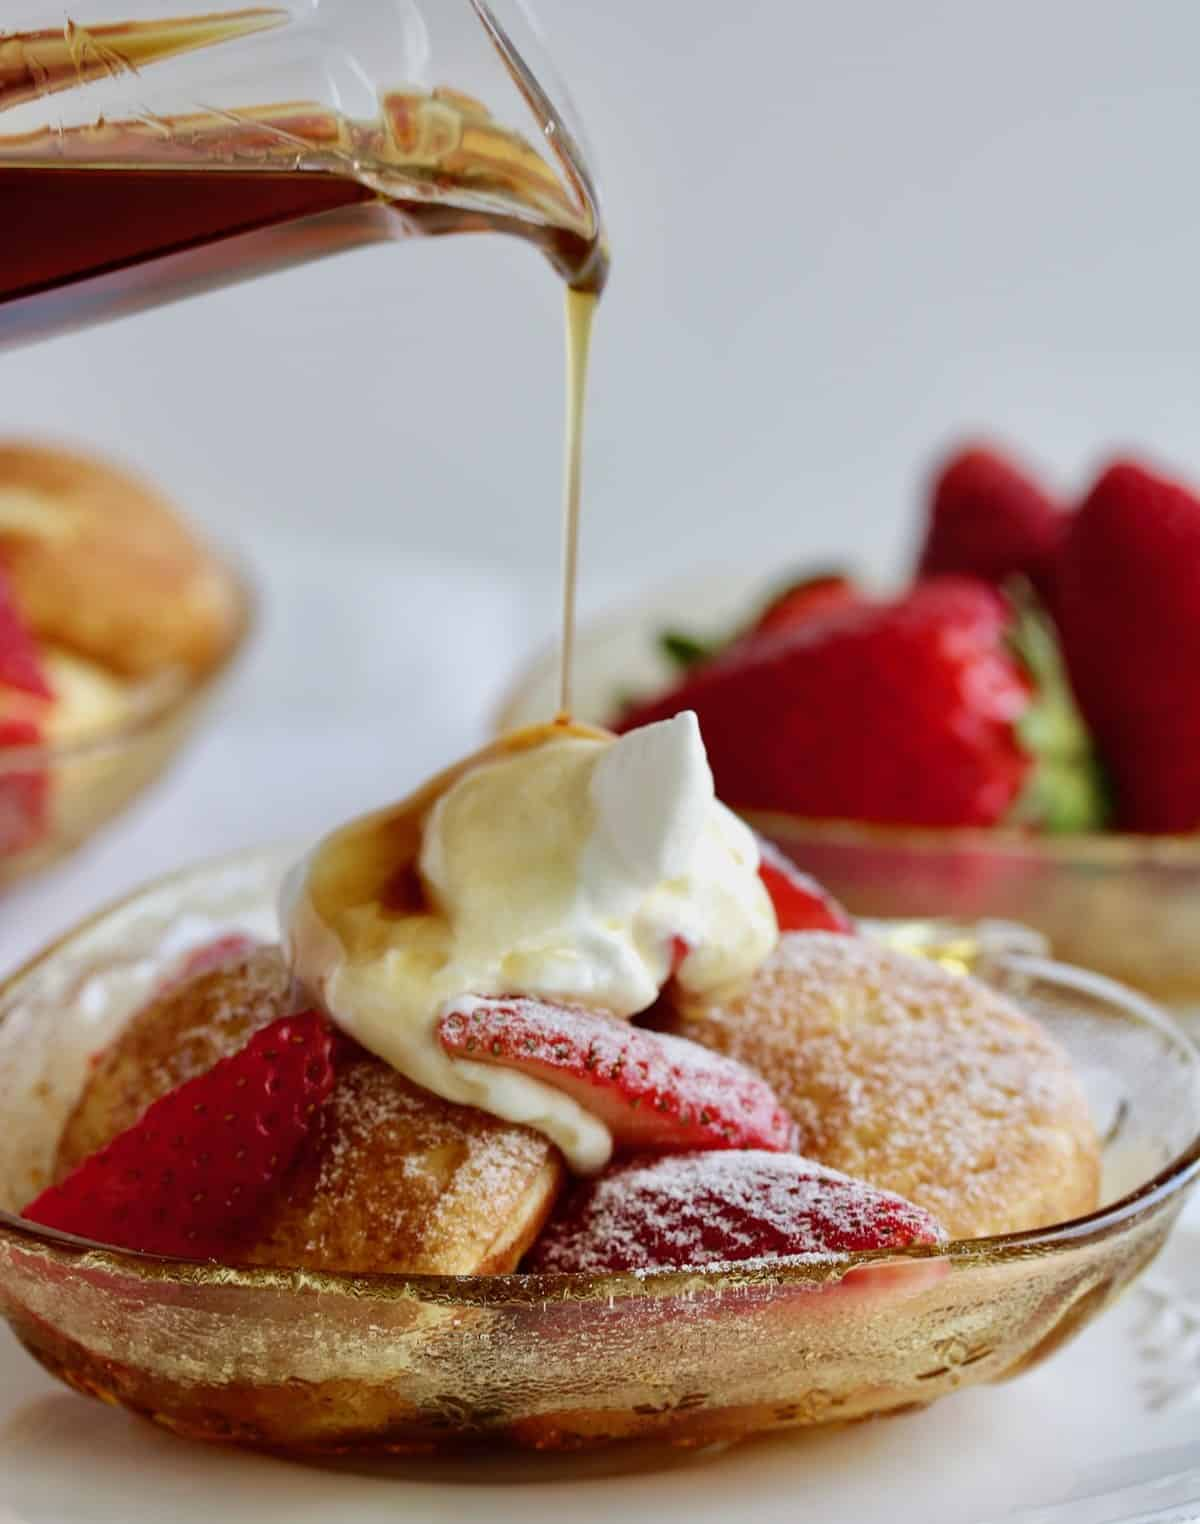 strawberry stuffed pancakes in bowl with sliced strawberries, cream and syrup poured on top